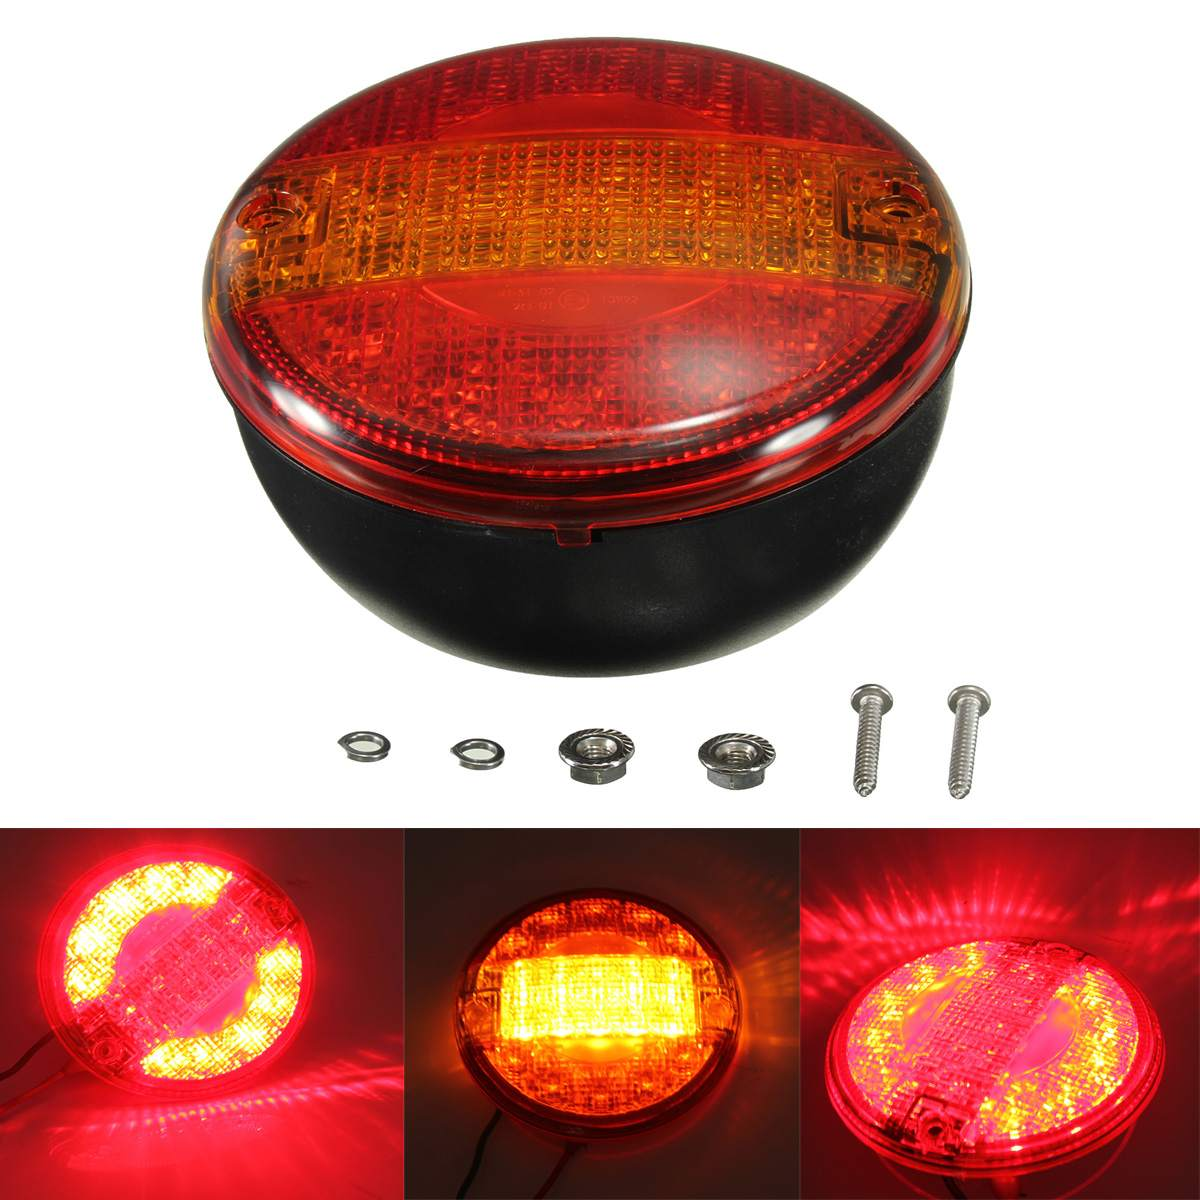 Car Light Assembly Kind-Hearted 12/24v Universal Led Rear Tail Stop Indicator Light Round Truck Caravan E-marker 2019 Latest Style Online Sale 50%